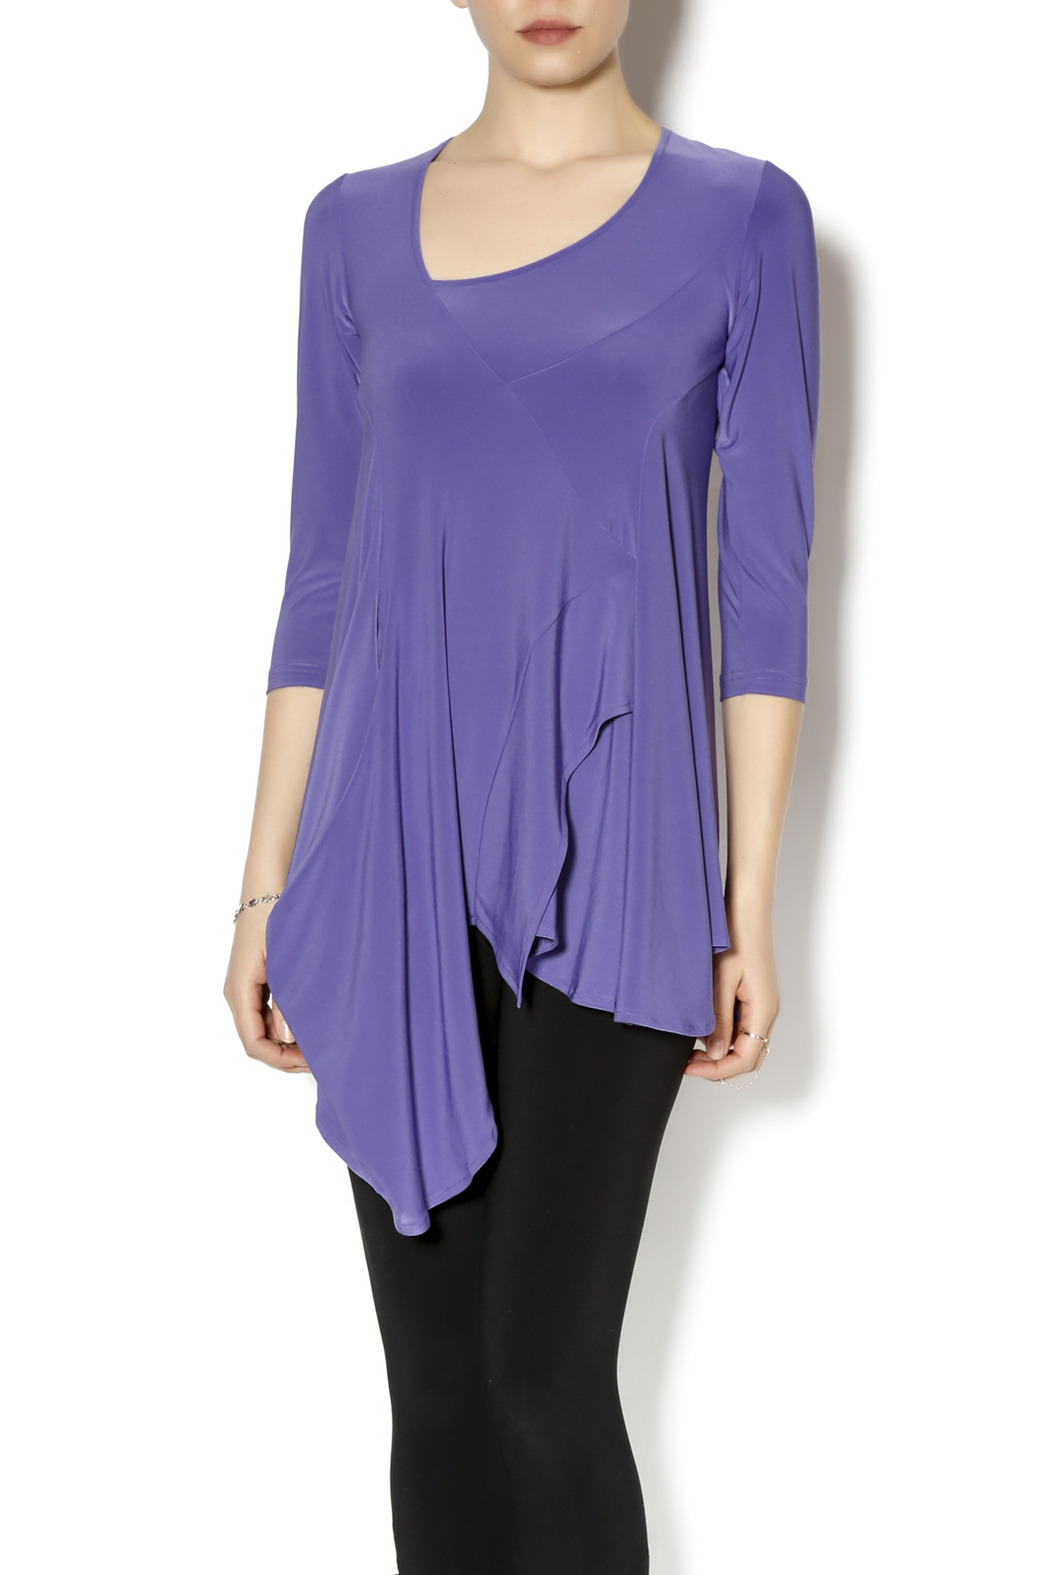 48c52691d Sympli Flow Tunic from Wyoming by Fashion Crossroads, Inc — Shoptiques